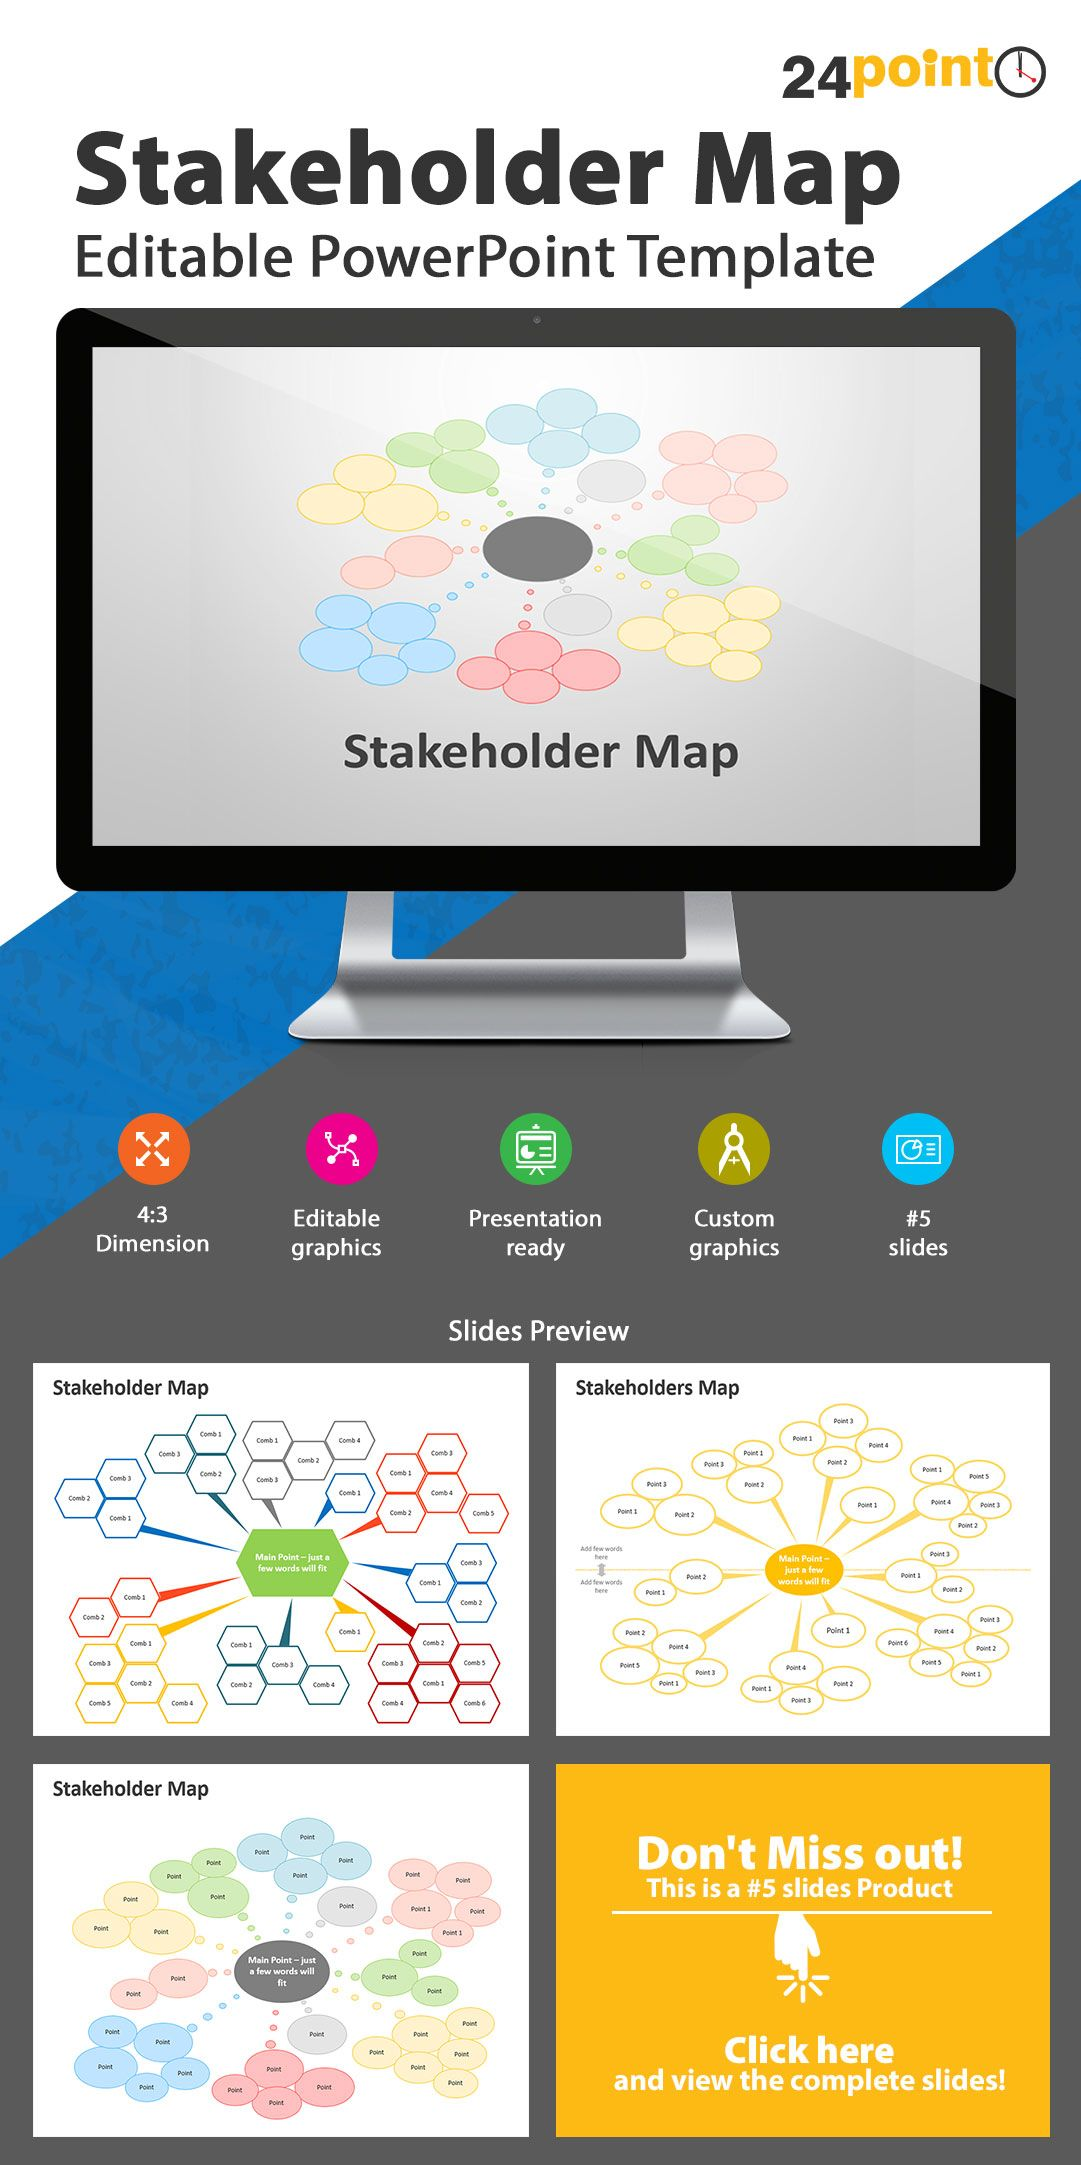 Stakeholder map editable powerpoint templates business concepts stakeholder map editable powerpoint templates toneelgroepblik Gallery